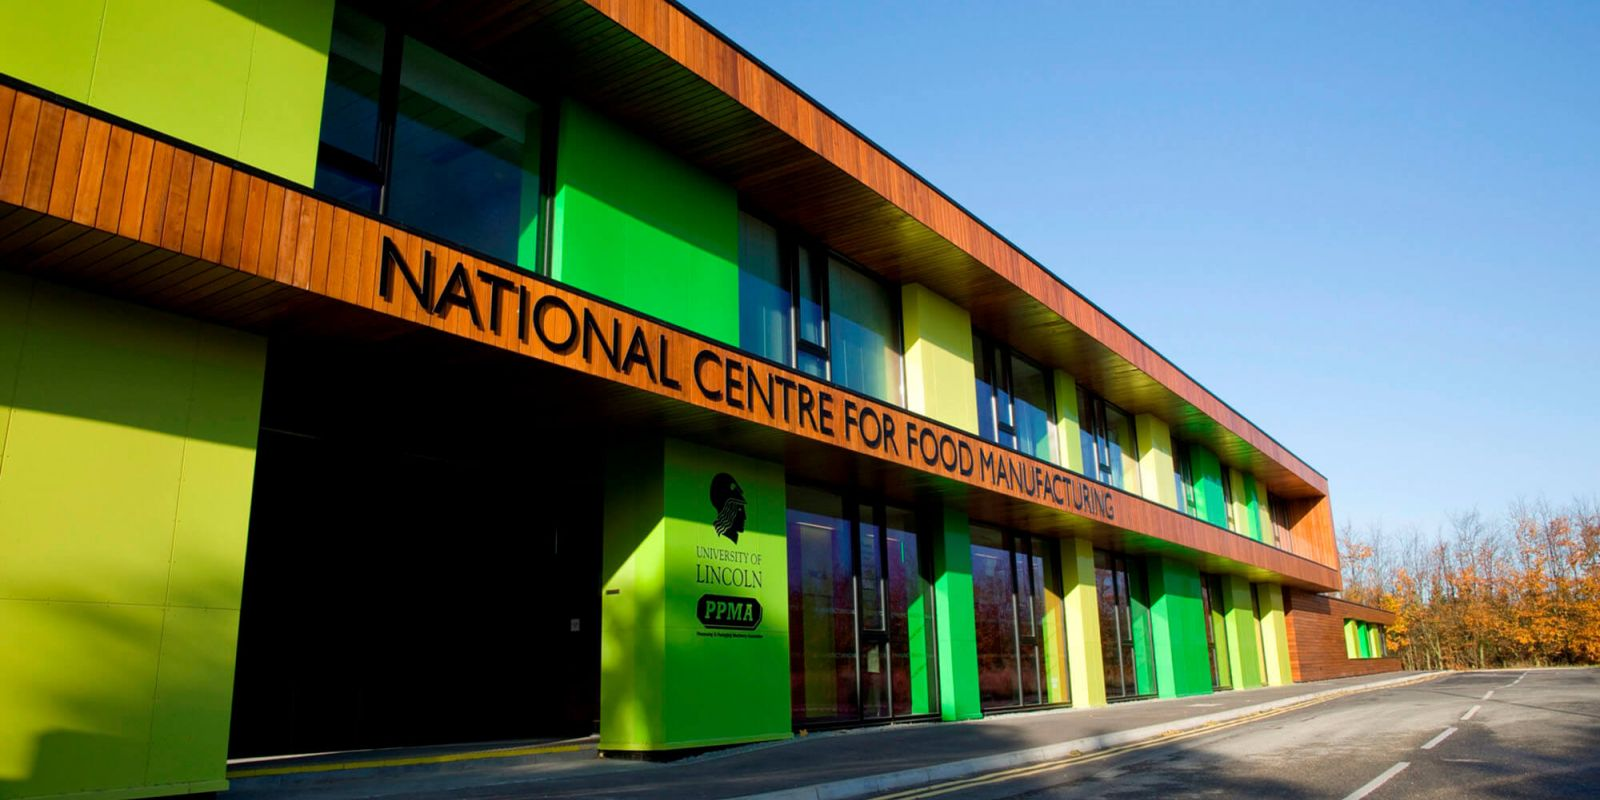 National Centre for Food Manufacturing building